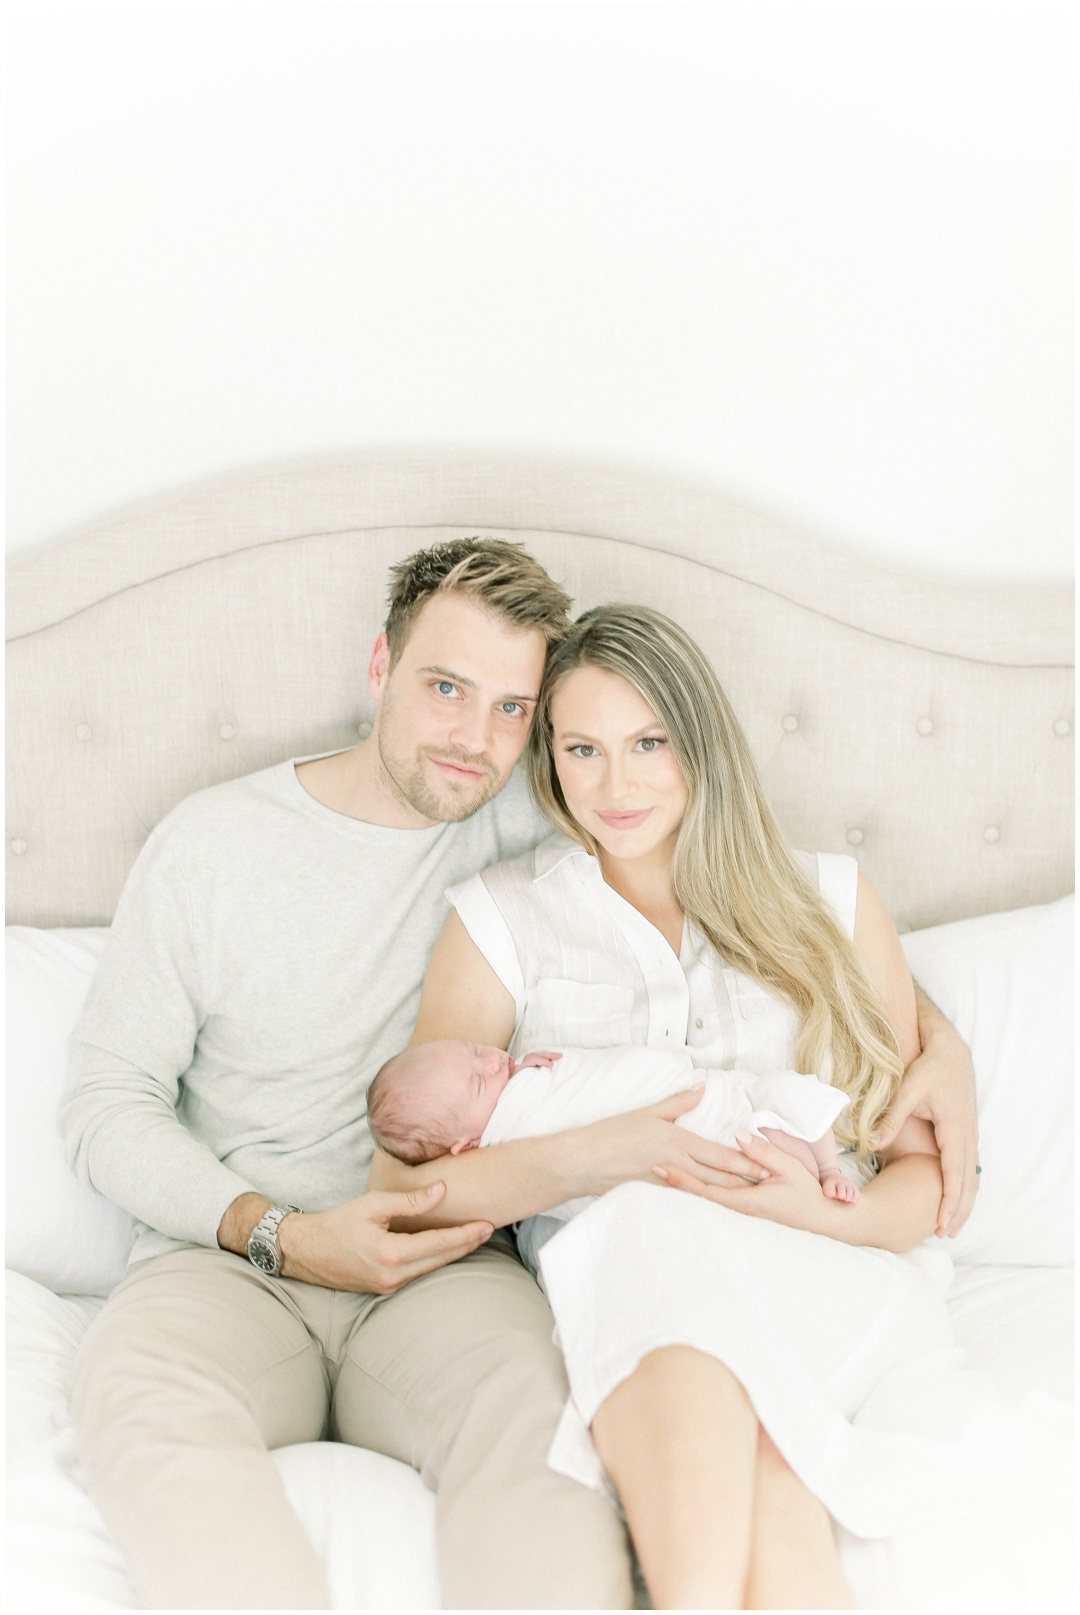 Newport_Beach_Newborn_Light_Airy_Natural_Photographer_Newport_Beach_Photographer_Orange_County_Family_Photographer_Cori_Kleckner_Photography_Newport_Beach_Photographer_newborn_Stephanie_Messiter_Steinhafel_David_Steinhafel_3825.jpg